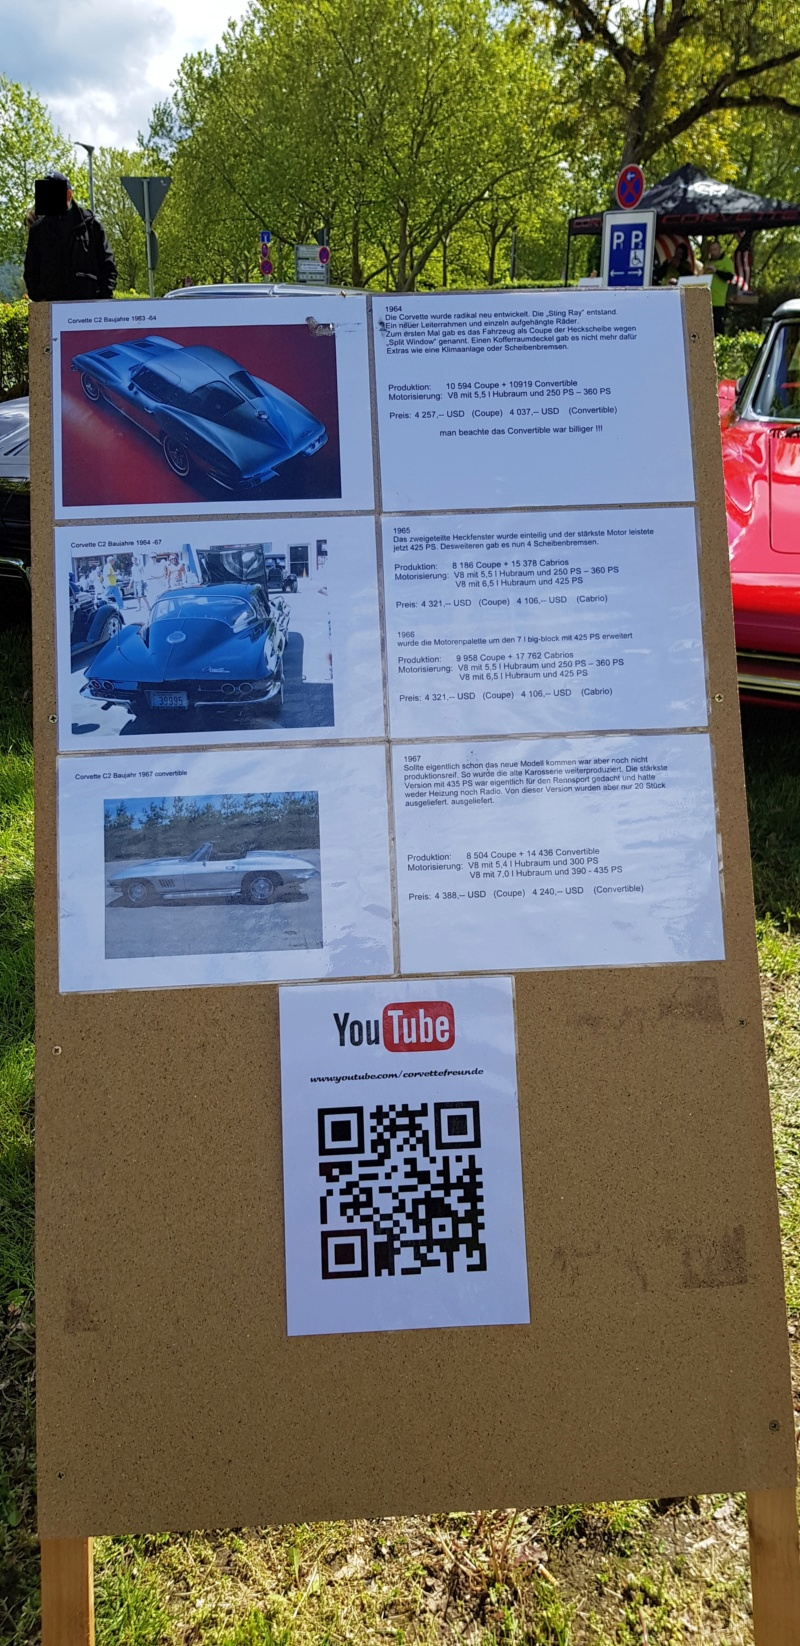 16. Corvette Sunday der Corvettenfreunde Kurpfalz in Ladenburg 5.5.2019 20190530